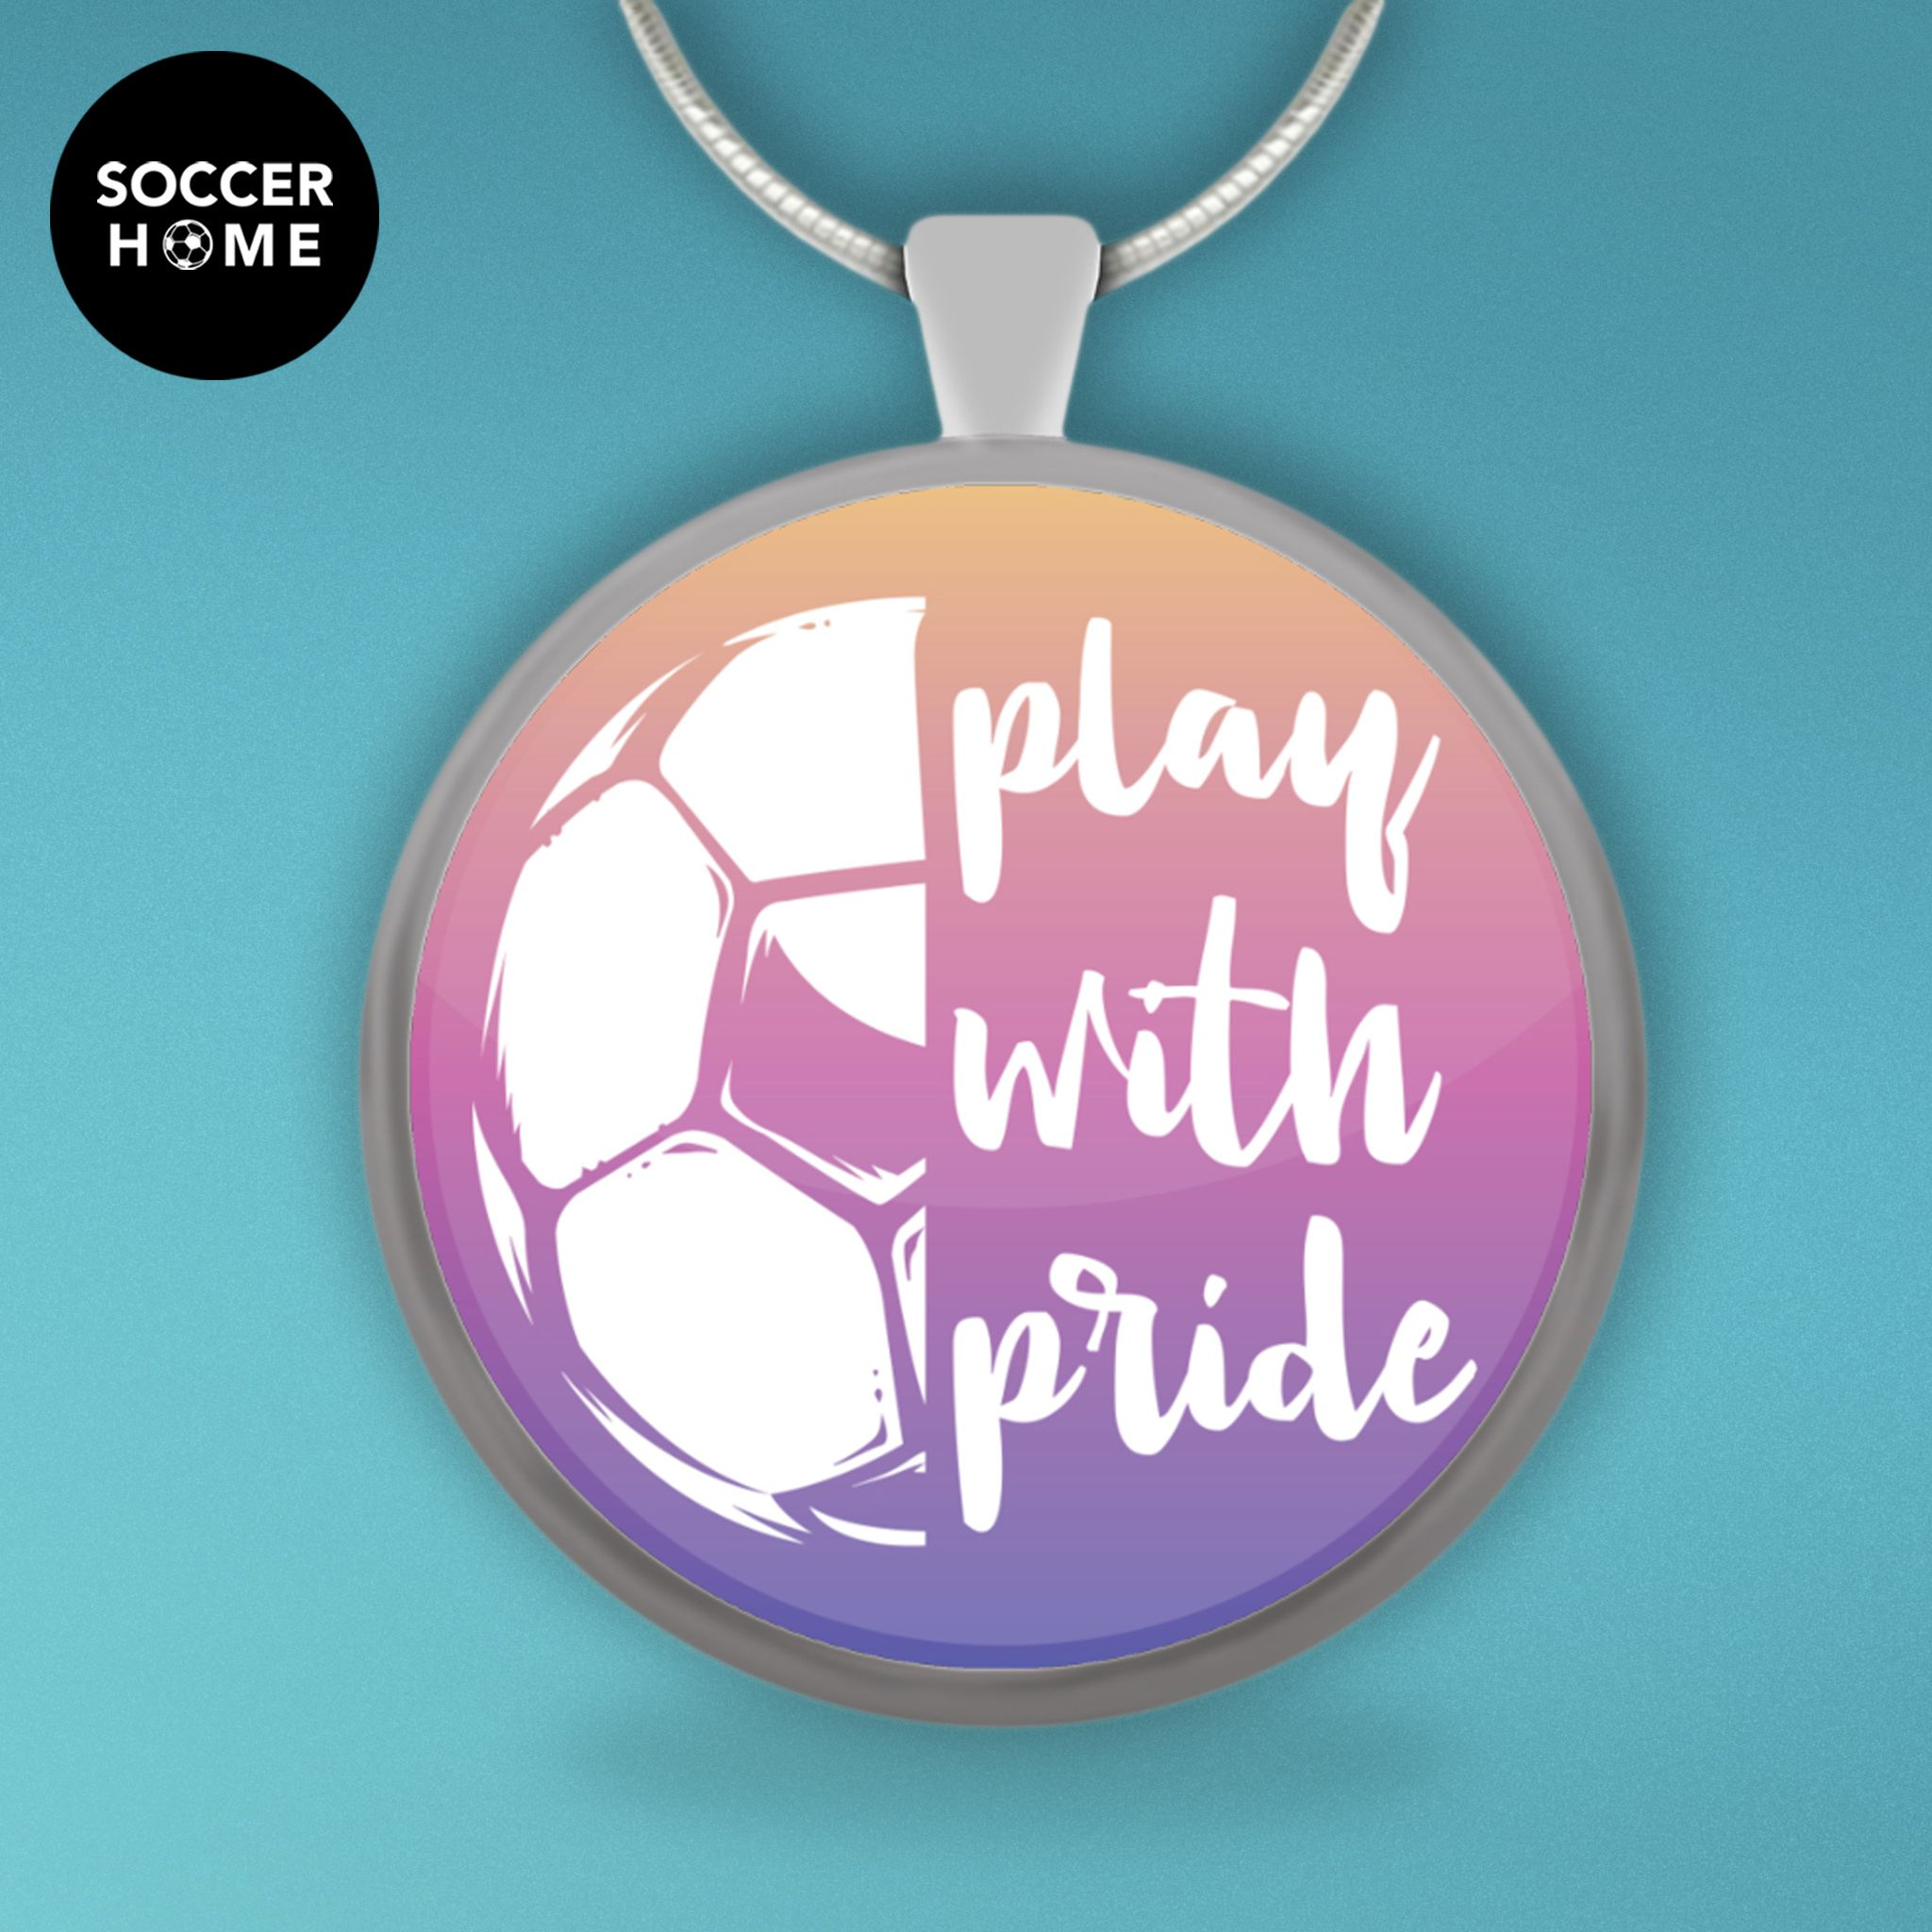 sterling pendants charm silver large pendant soccer football